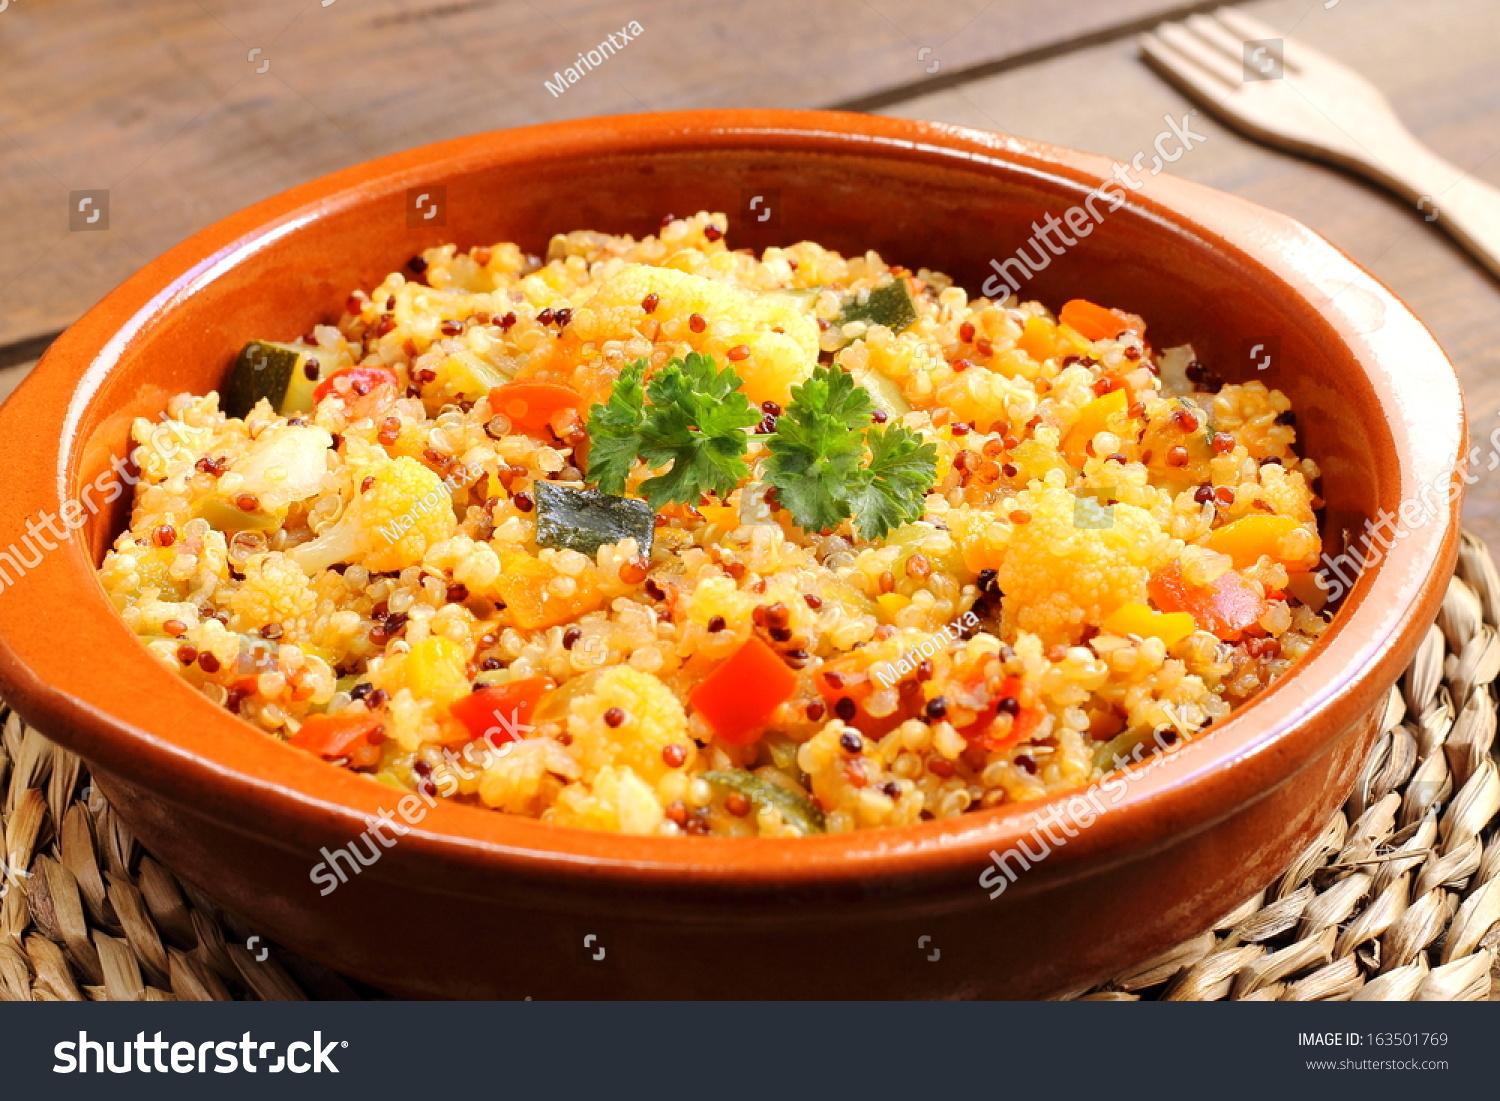 Quinoa With Vegetables Stock Photo 163501769 : Shutterstock